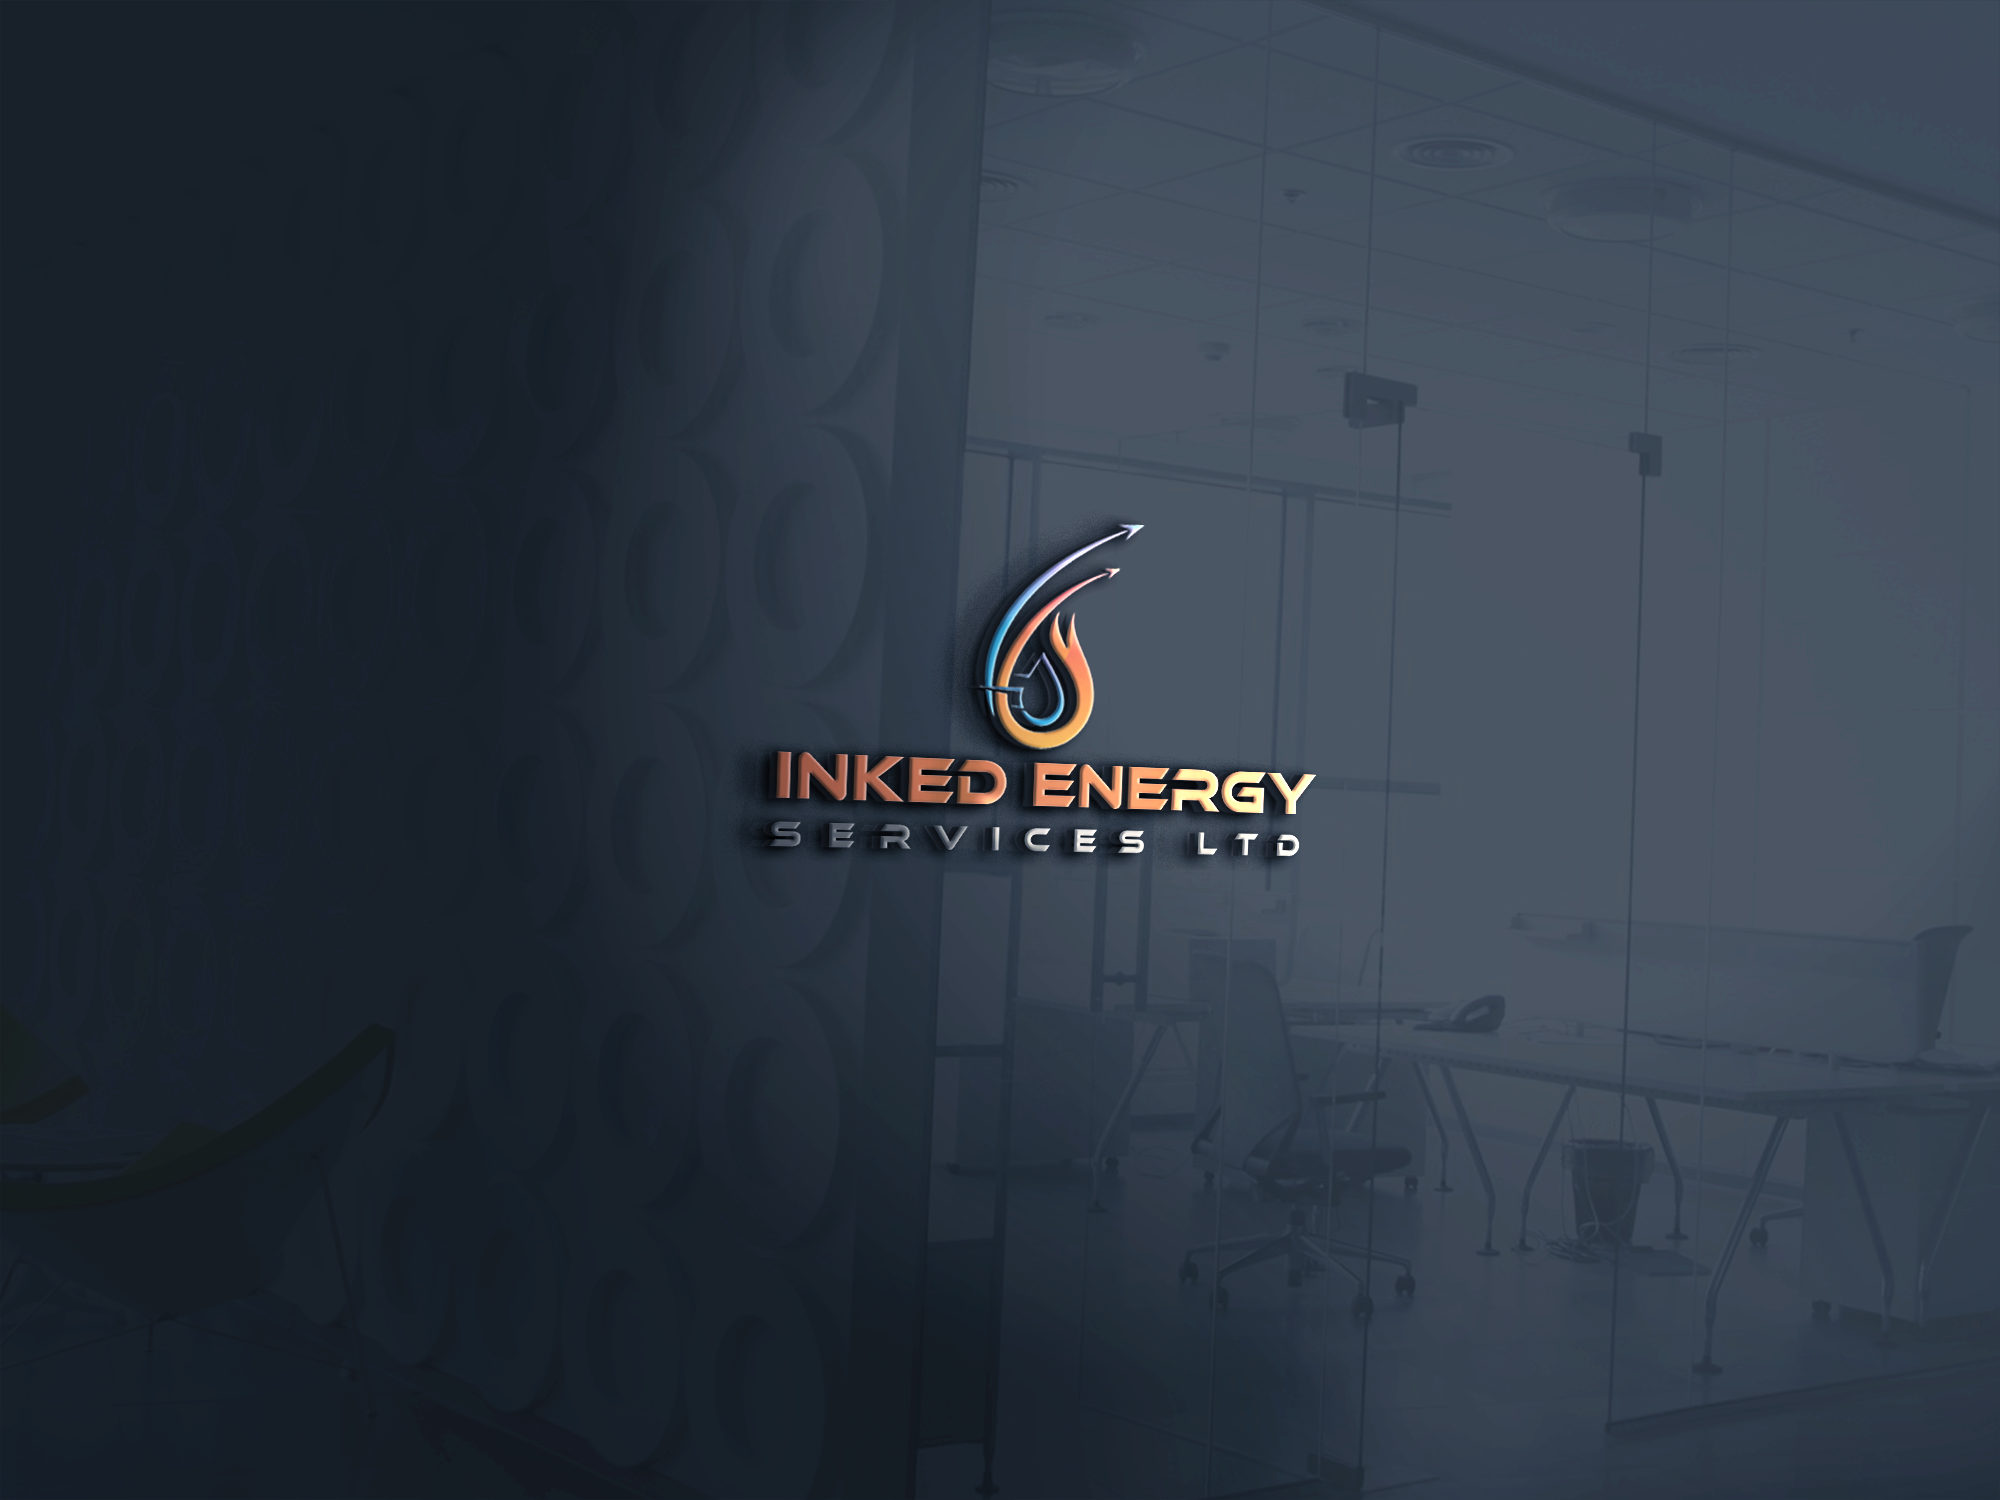 Logo Design by Private User - Entry No. 72 in the Logo Design Contest Creative Logo Design for INKED ENERGY SERVICES LTD.